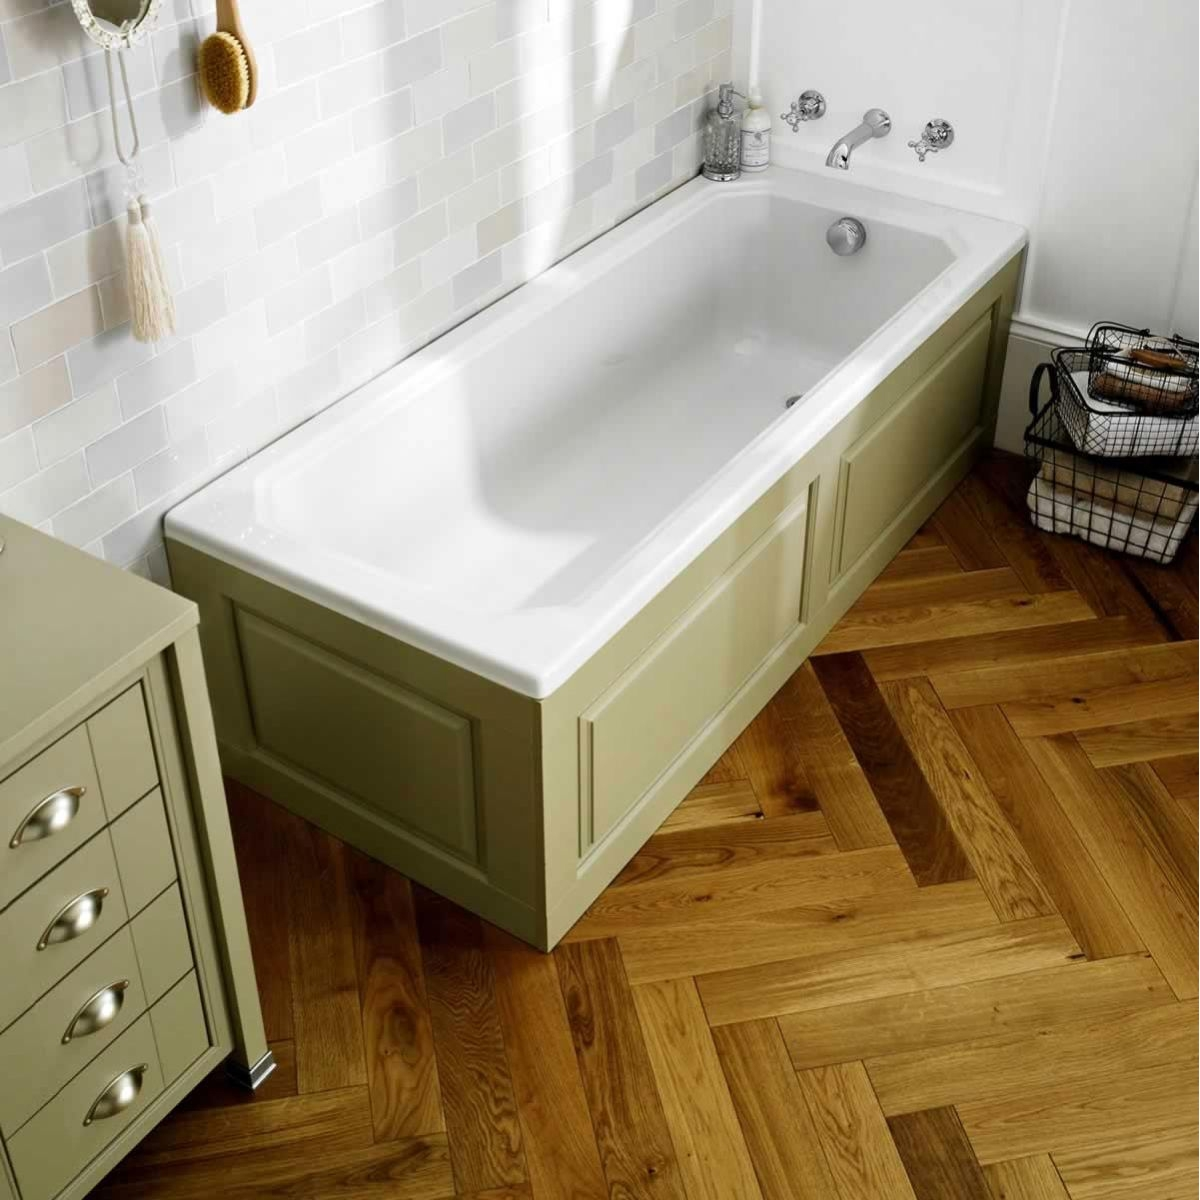 https://www.mepstock.co.uk/admin/images/hudson-reed-ascott-bath-panel_LDB109E_view.jpg